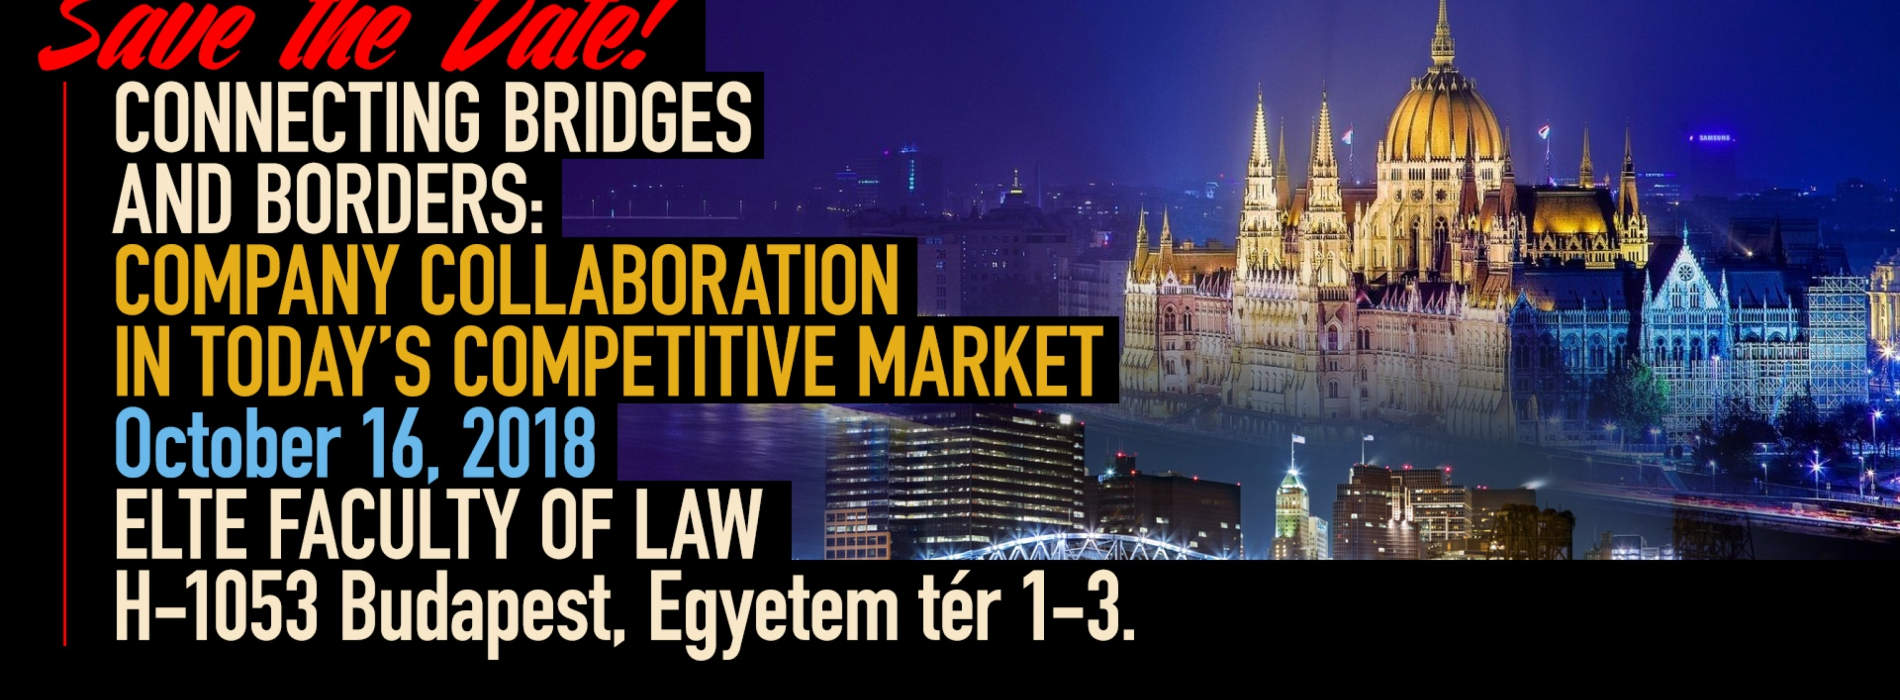 Connecting Bridges and Borders: Company Collaboration in Today's Competitive Market nemzetközi konferencia Budapesten